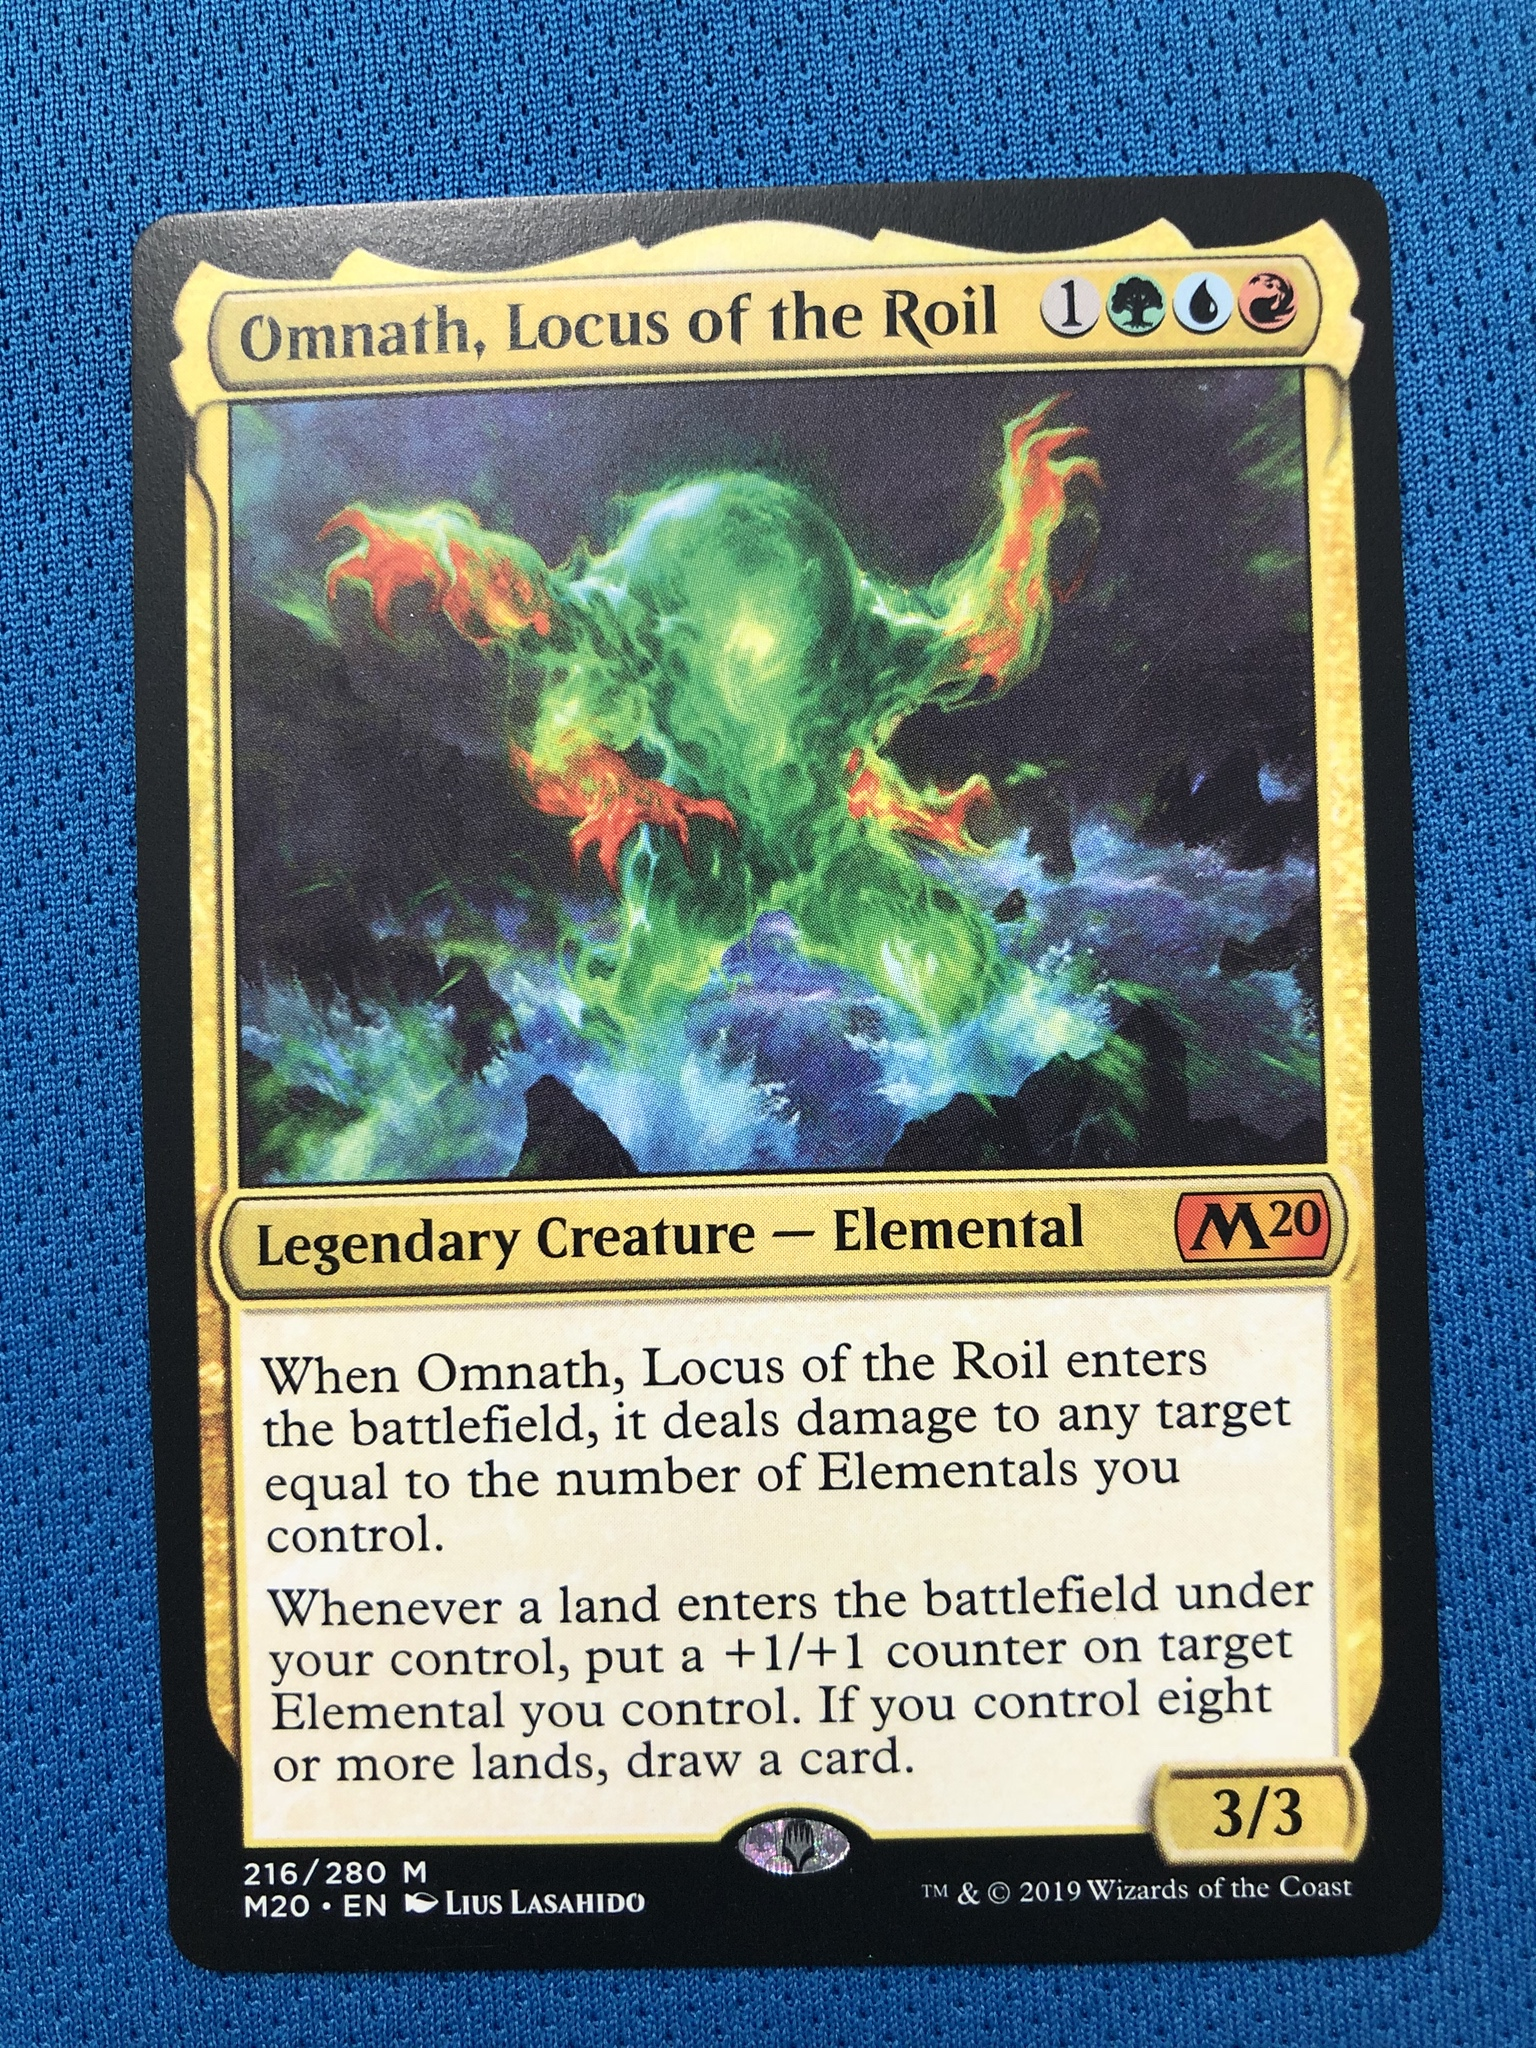 Omnath, Locus Of The Roil	M20 Hologram Magician ProxyKing 8.0 VIP The Proxy Cards To Gathering Every Single Mg Card.